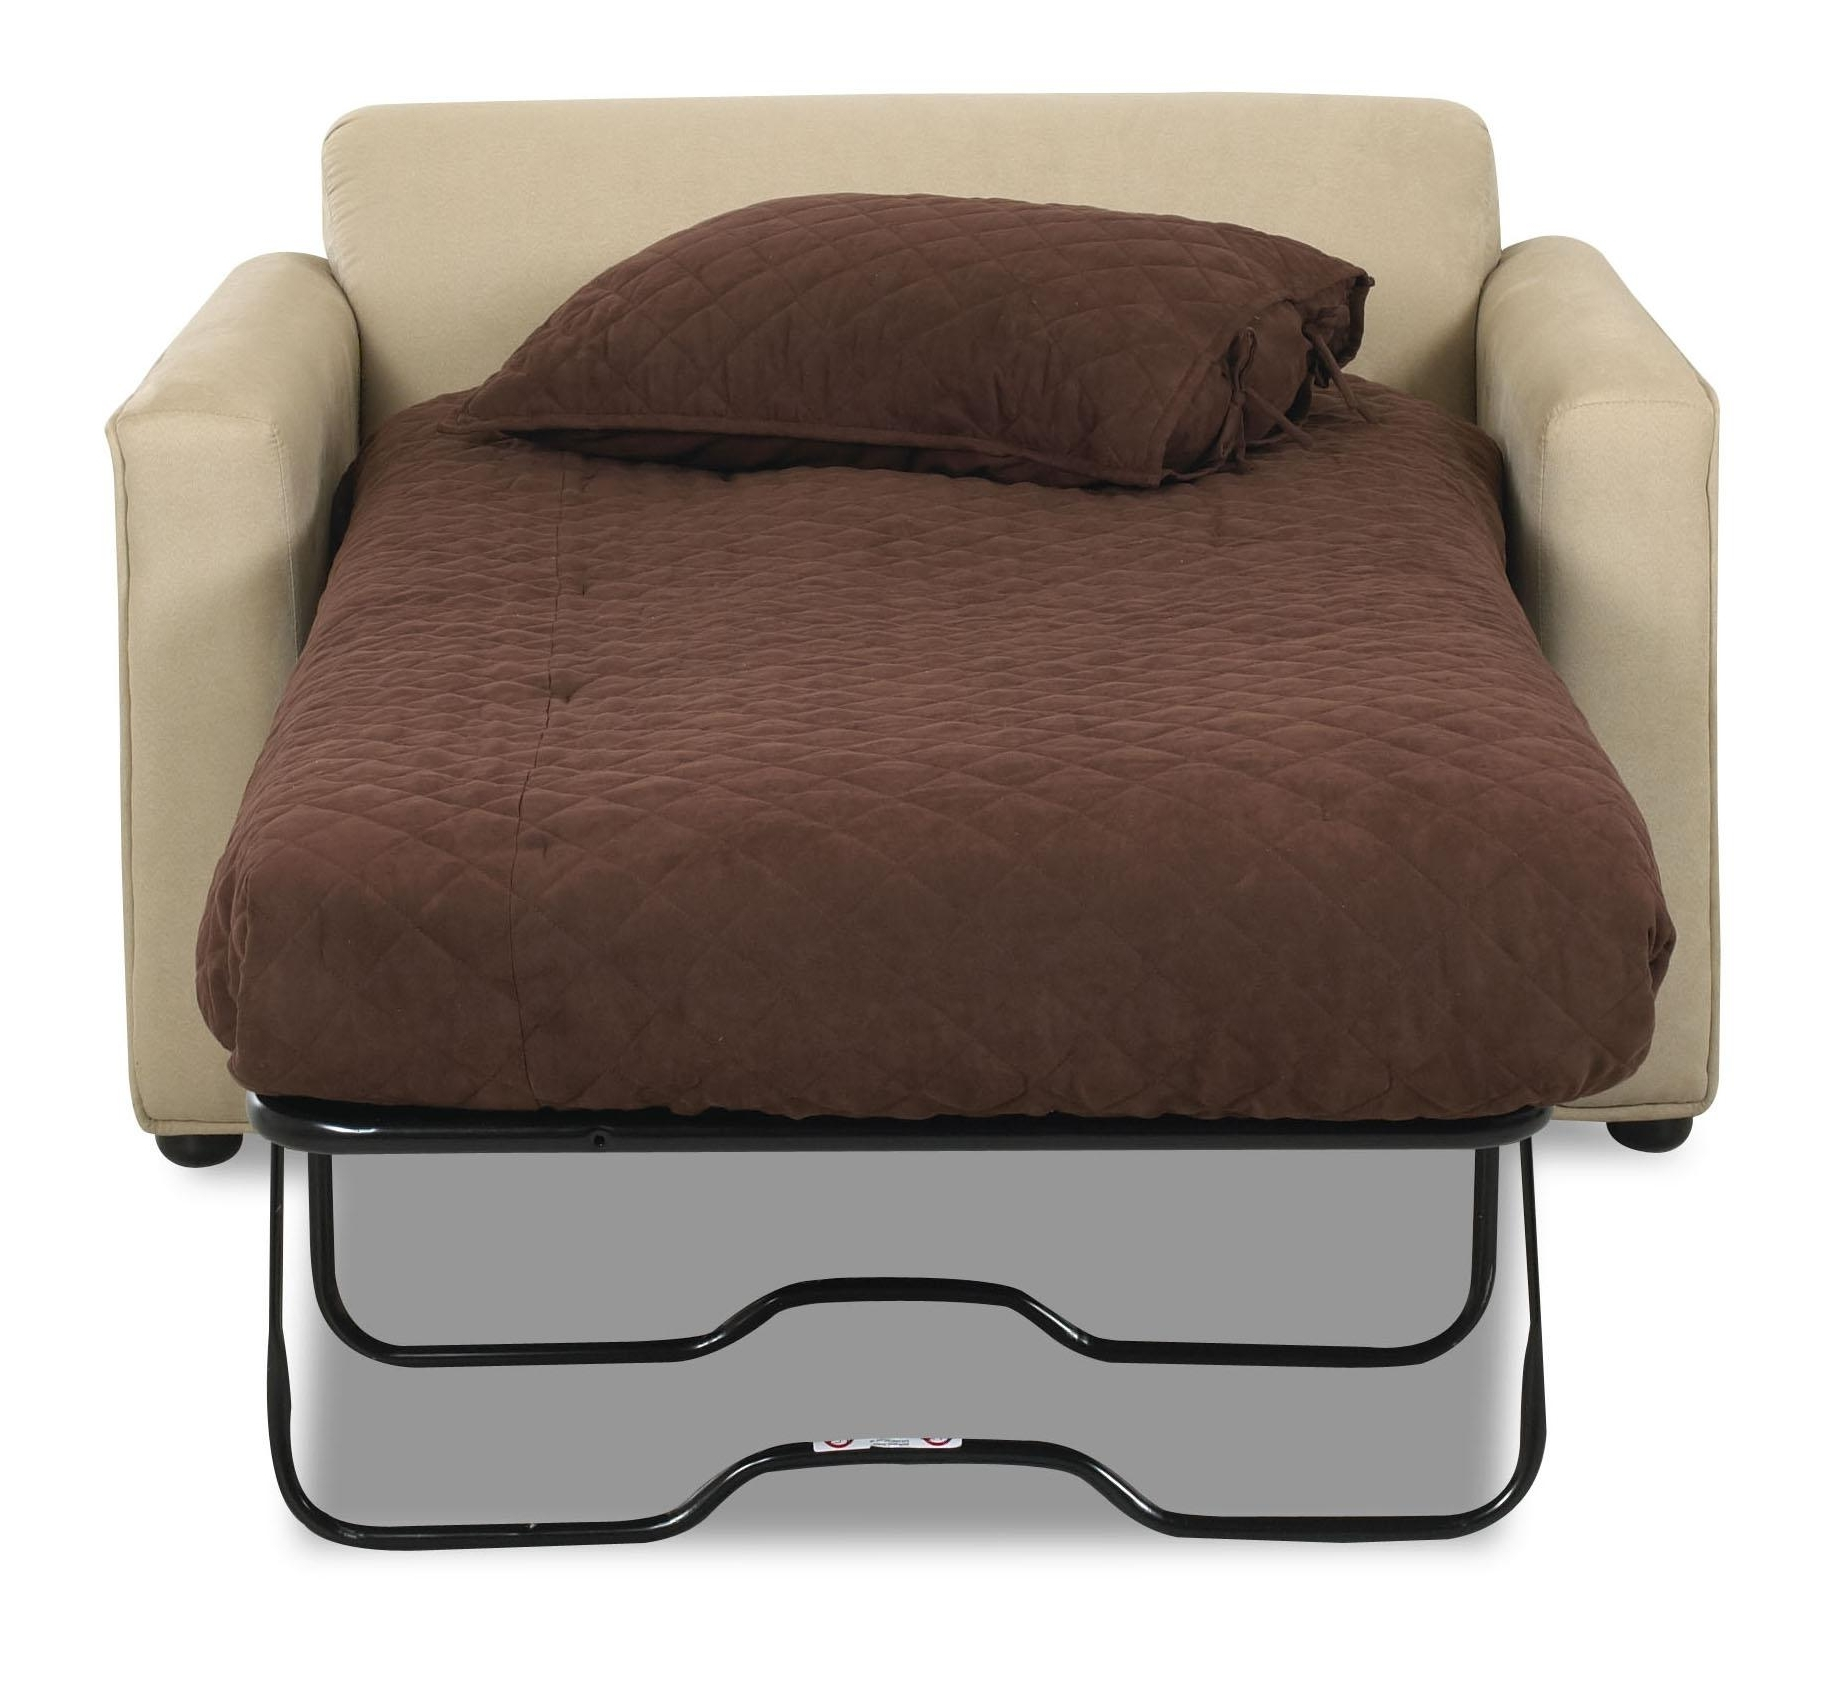 Beautiful Fold Out Twin Bed Chair Best Of – Inmunoanalisis With Best And Newest Pull Out Sofa Chairs (View 2 of 20)